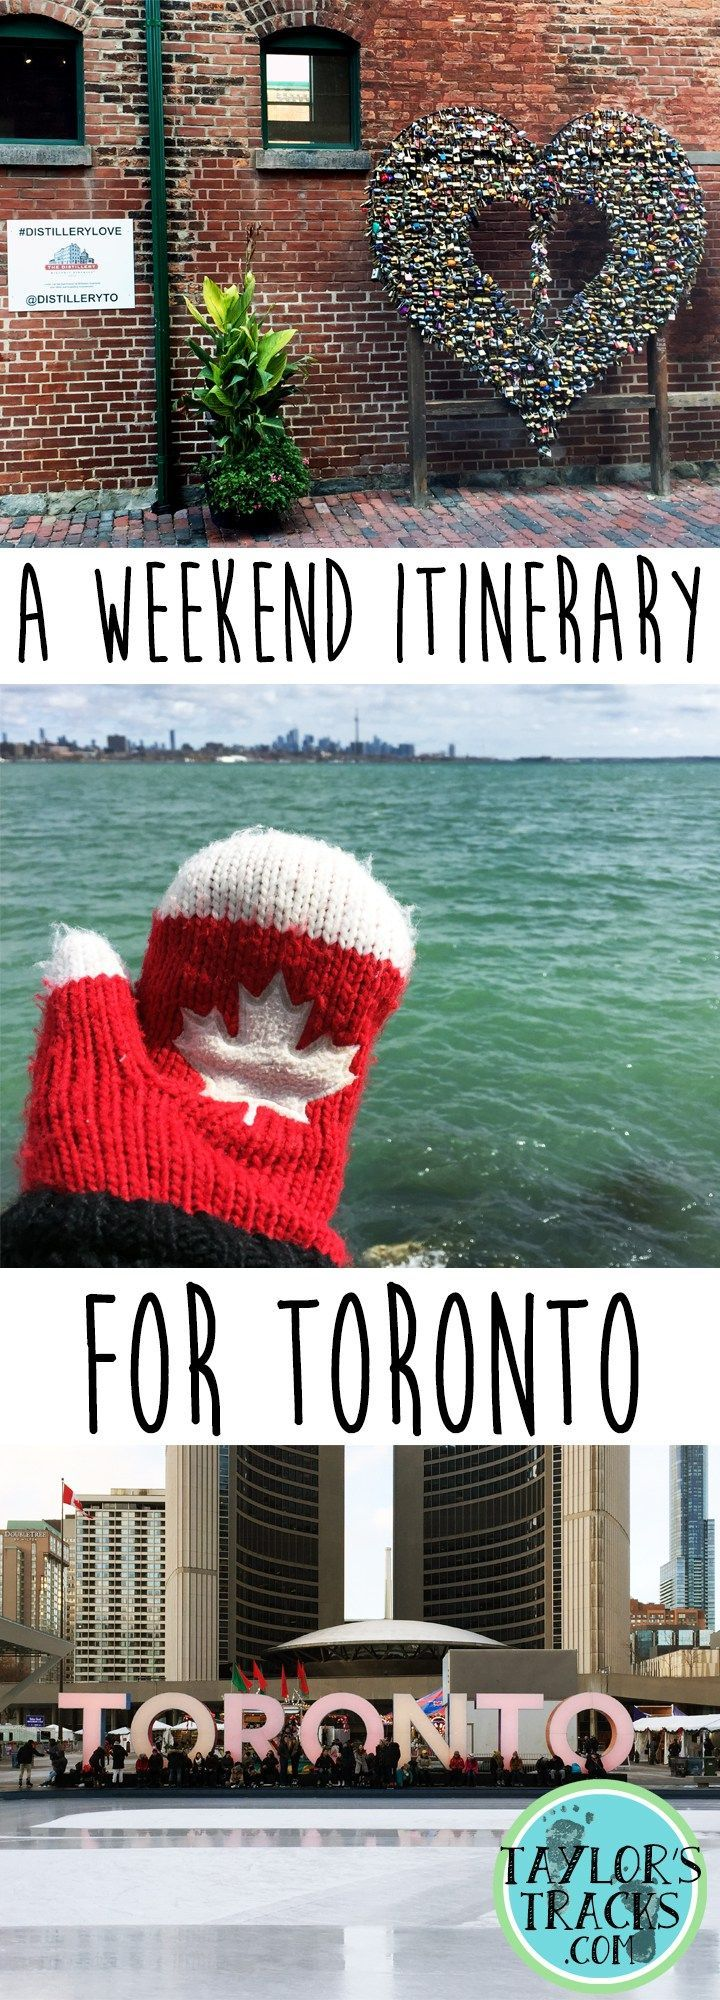 Plan your weekend trip to Toronto with this itinerary, recommended things to do and tips for the city!